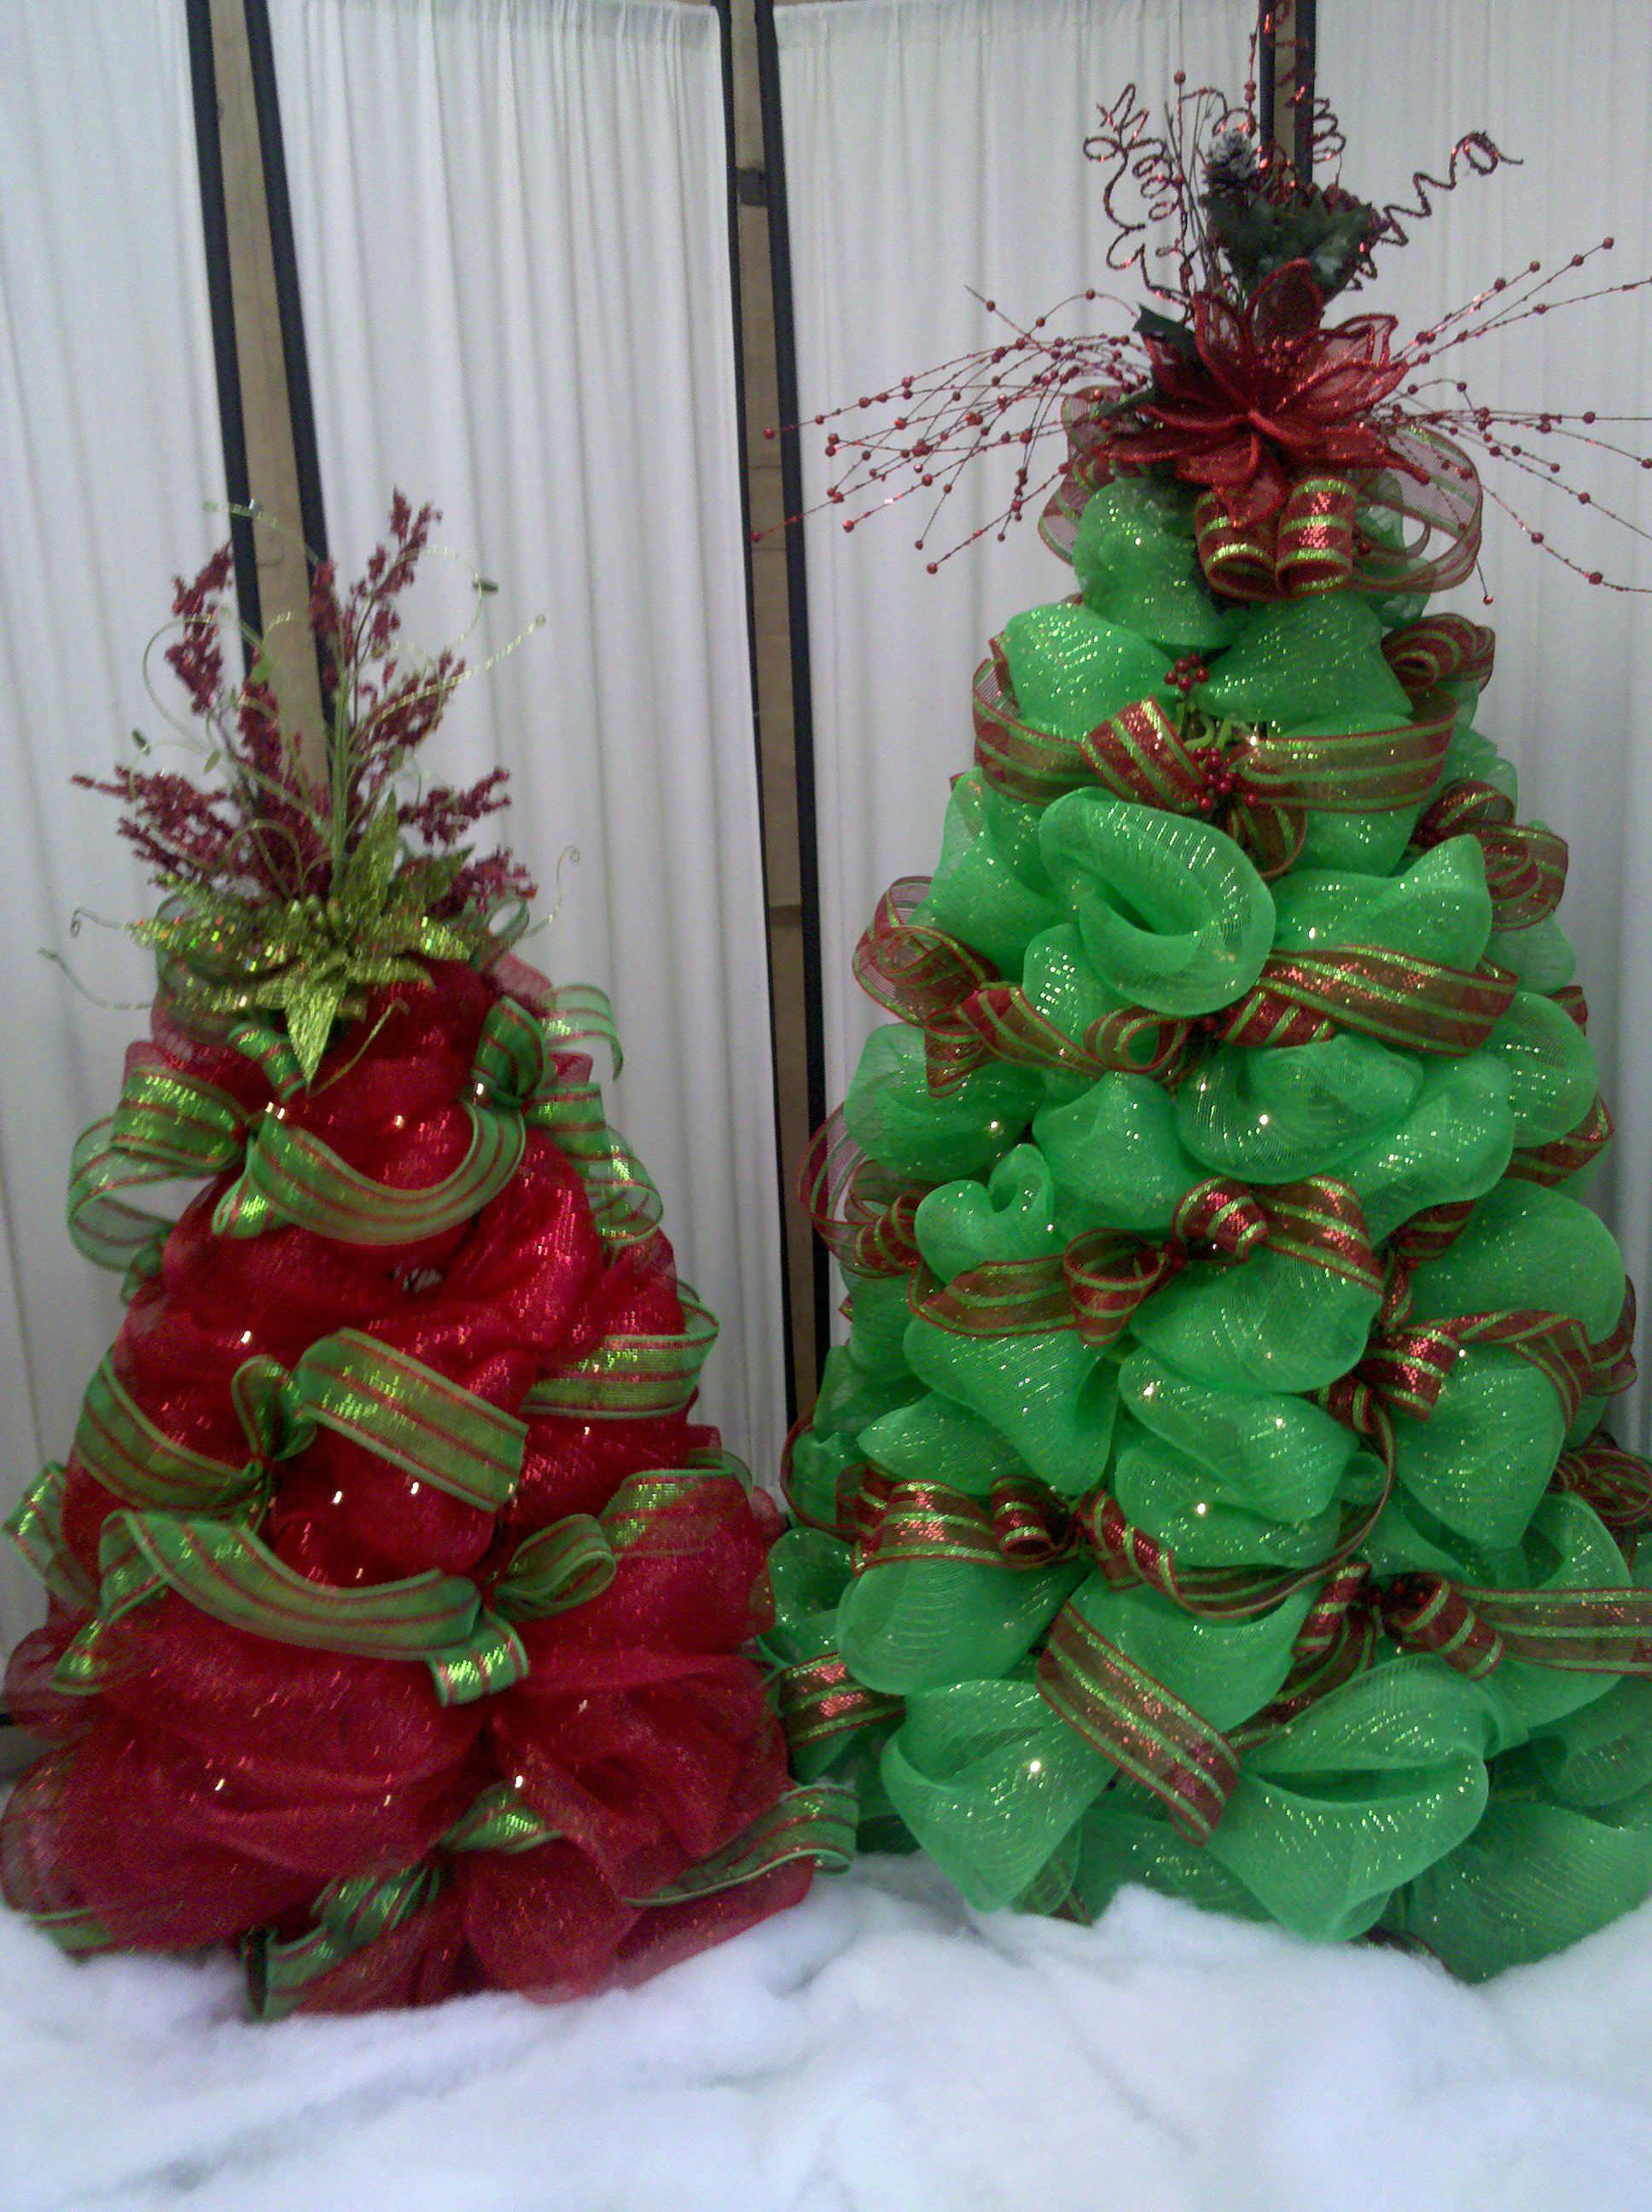 Deco Mesh Christmas Tree Ideas Part - 28: Deco Mesh Christmas Trees. Cute Idea. I Could Use Tomato Cages And Add  Lights